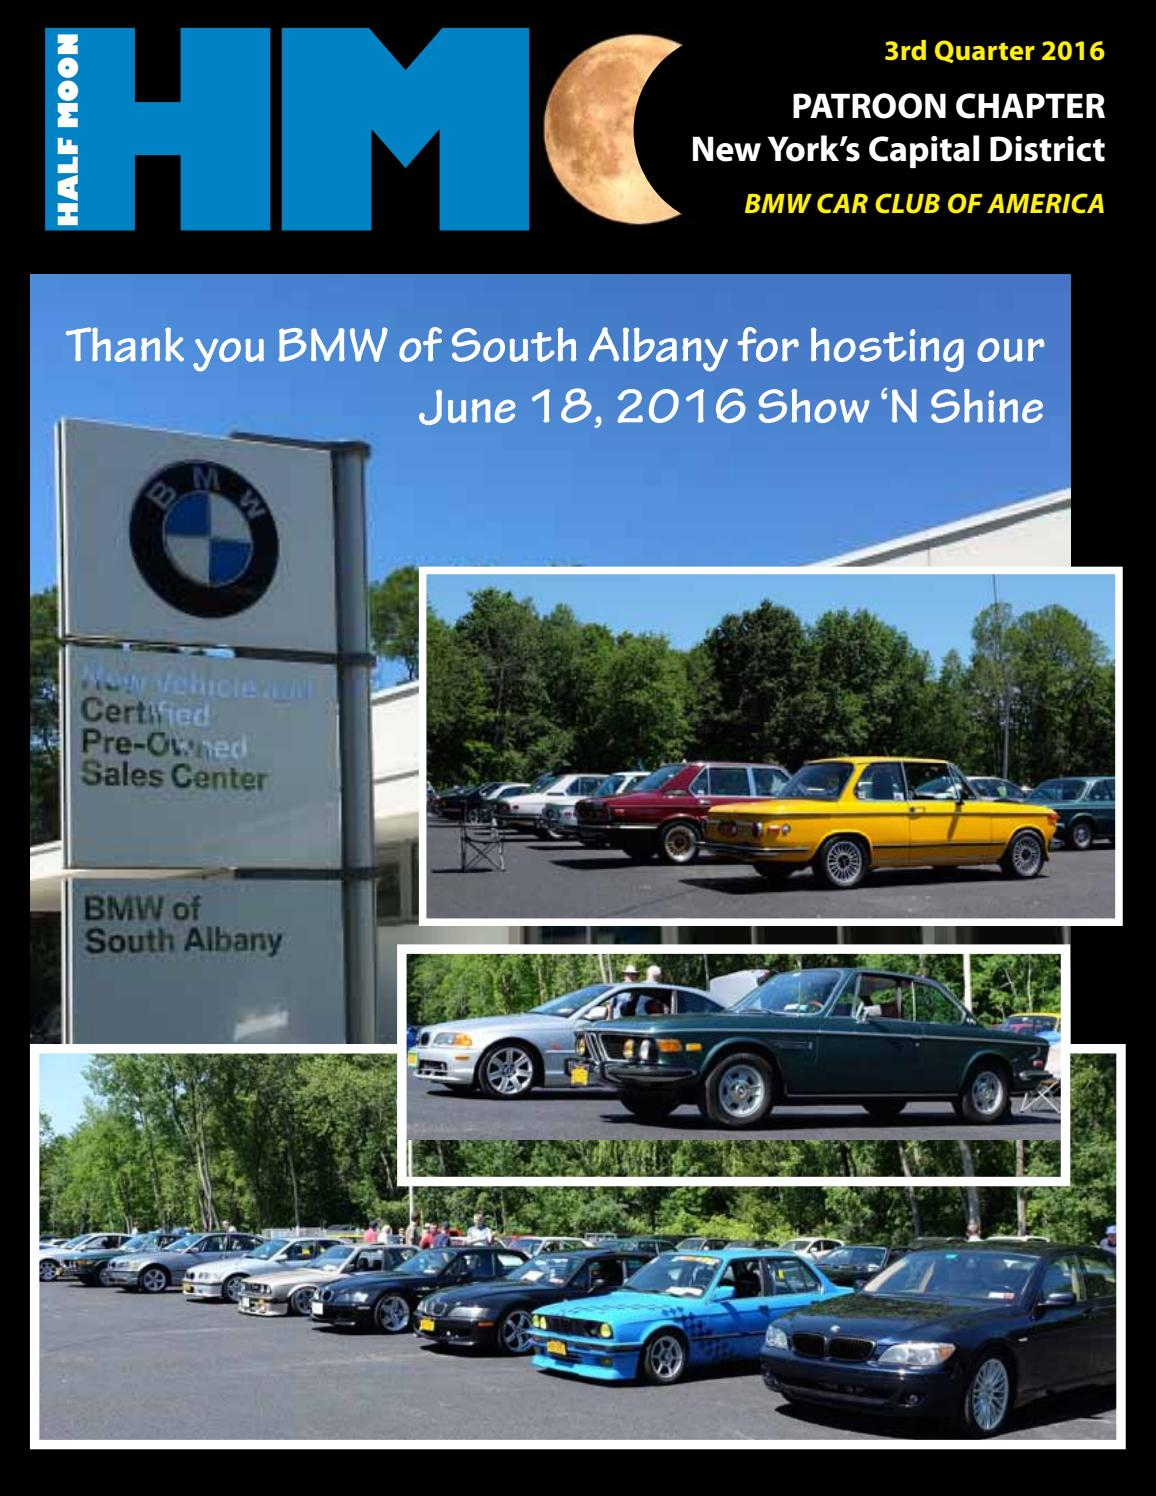 3rd Qtr 2016 Patroon Half Moon By Bmw Cca Patroon Chapter Issuu